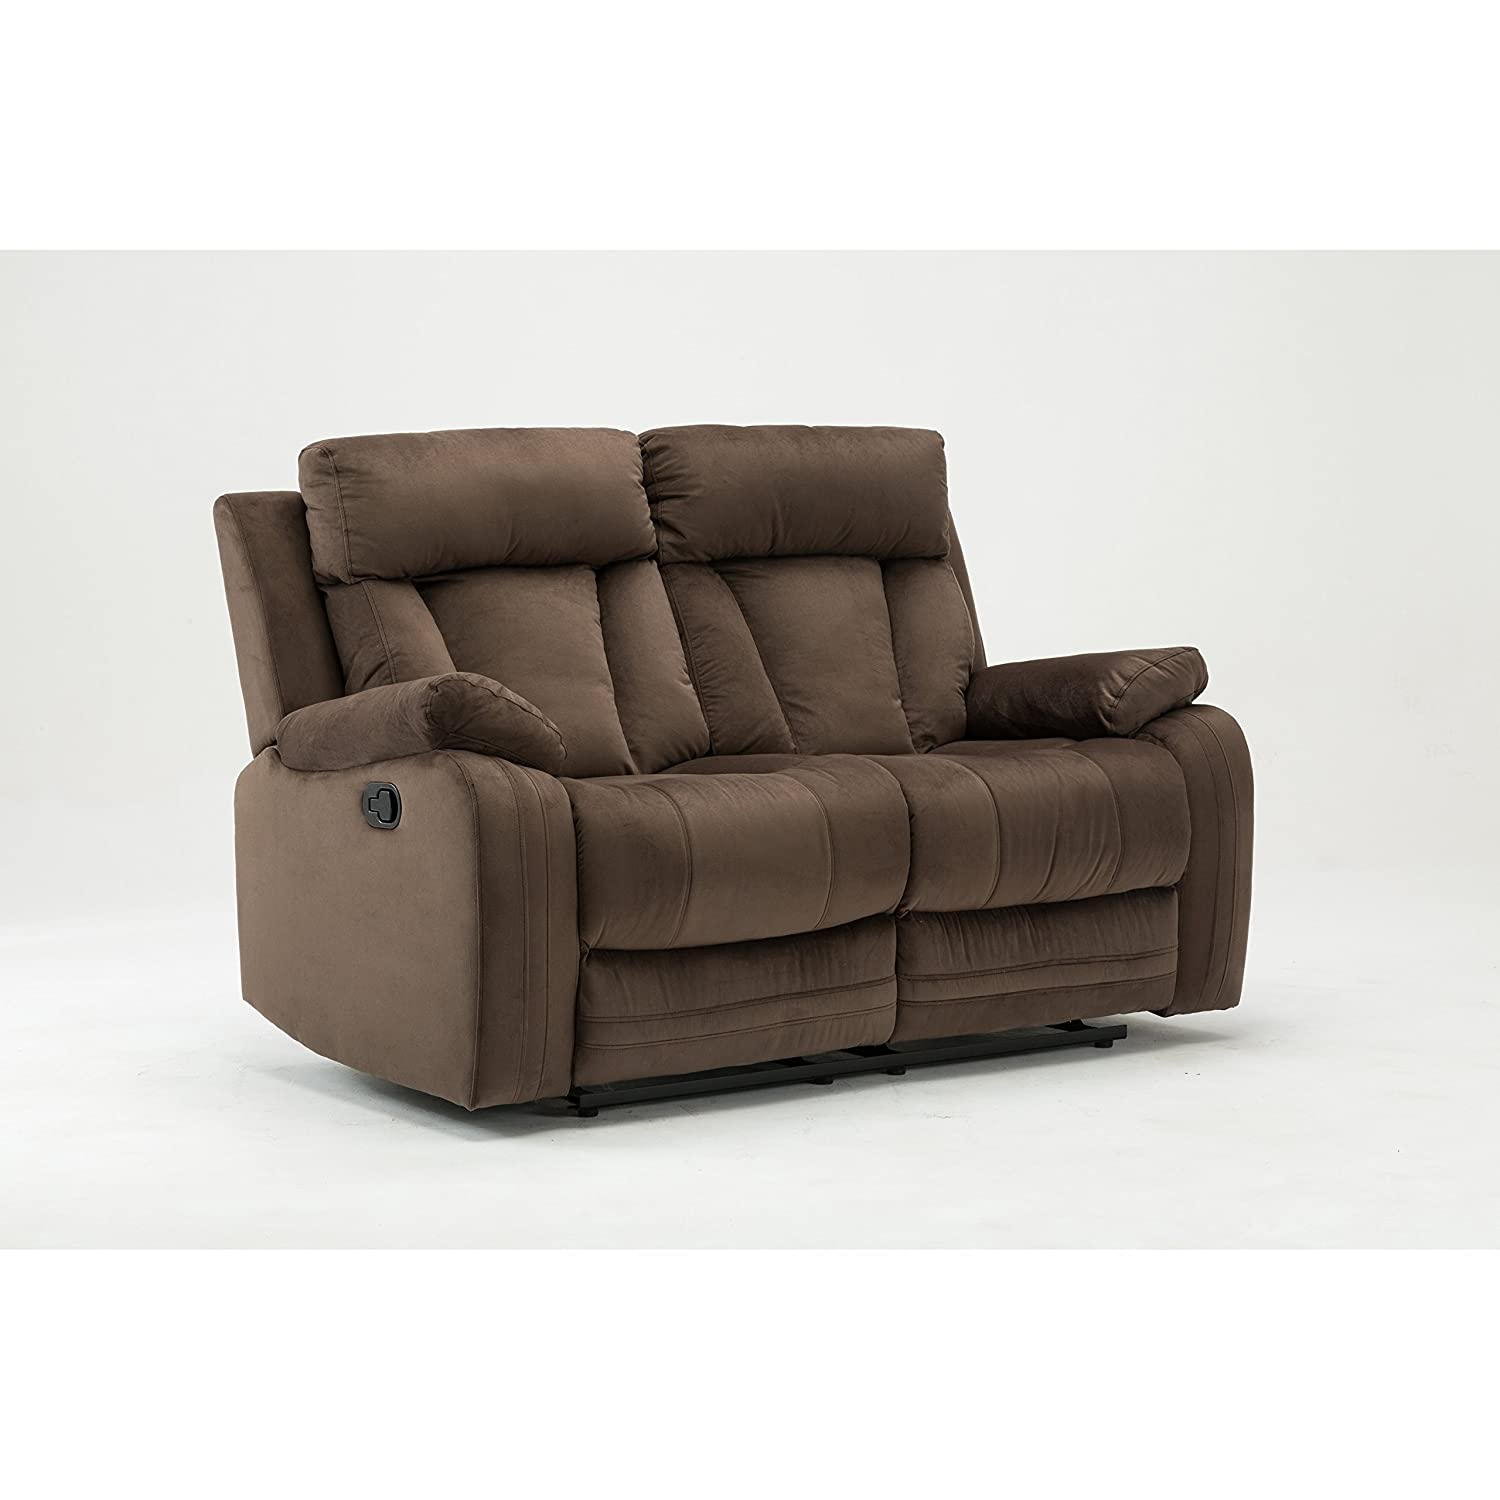 Blackjack Furniture The Elton Collection Modern Reclining Living Room Den Loveseat, Beige